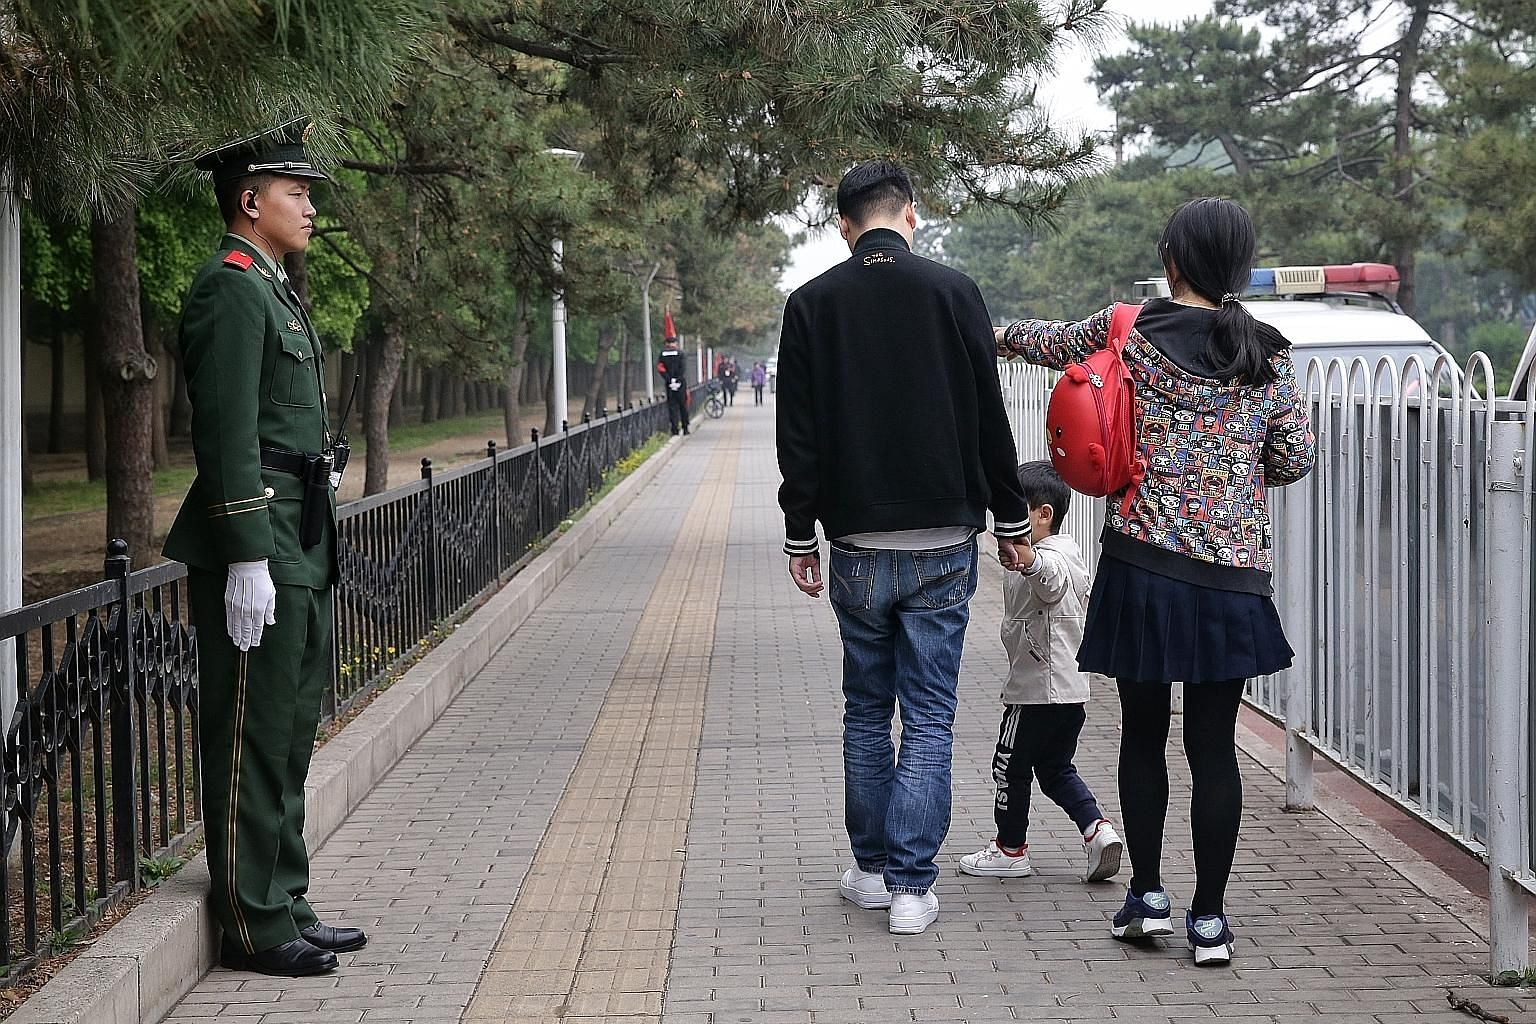 A couple and their child in Beijing. According to the latest World Population Prospects from the United Nations, 27 countries have fewer people now than in 2010, and it expects 55 nations - including China - to experience declines between now and 205